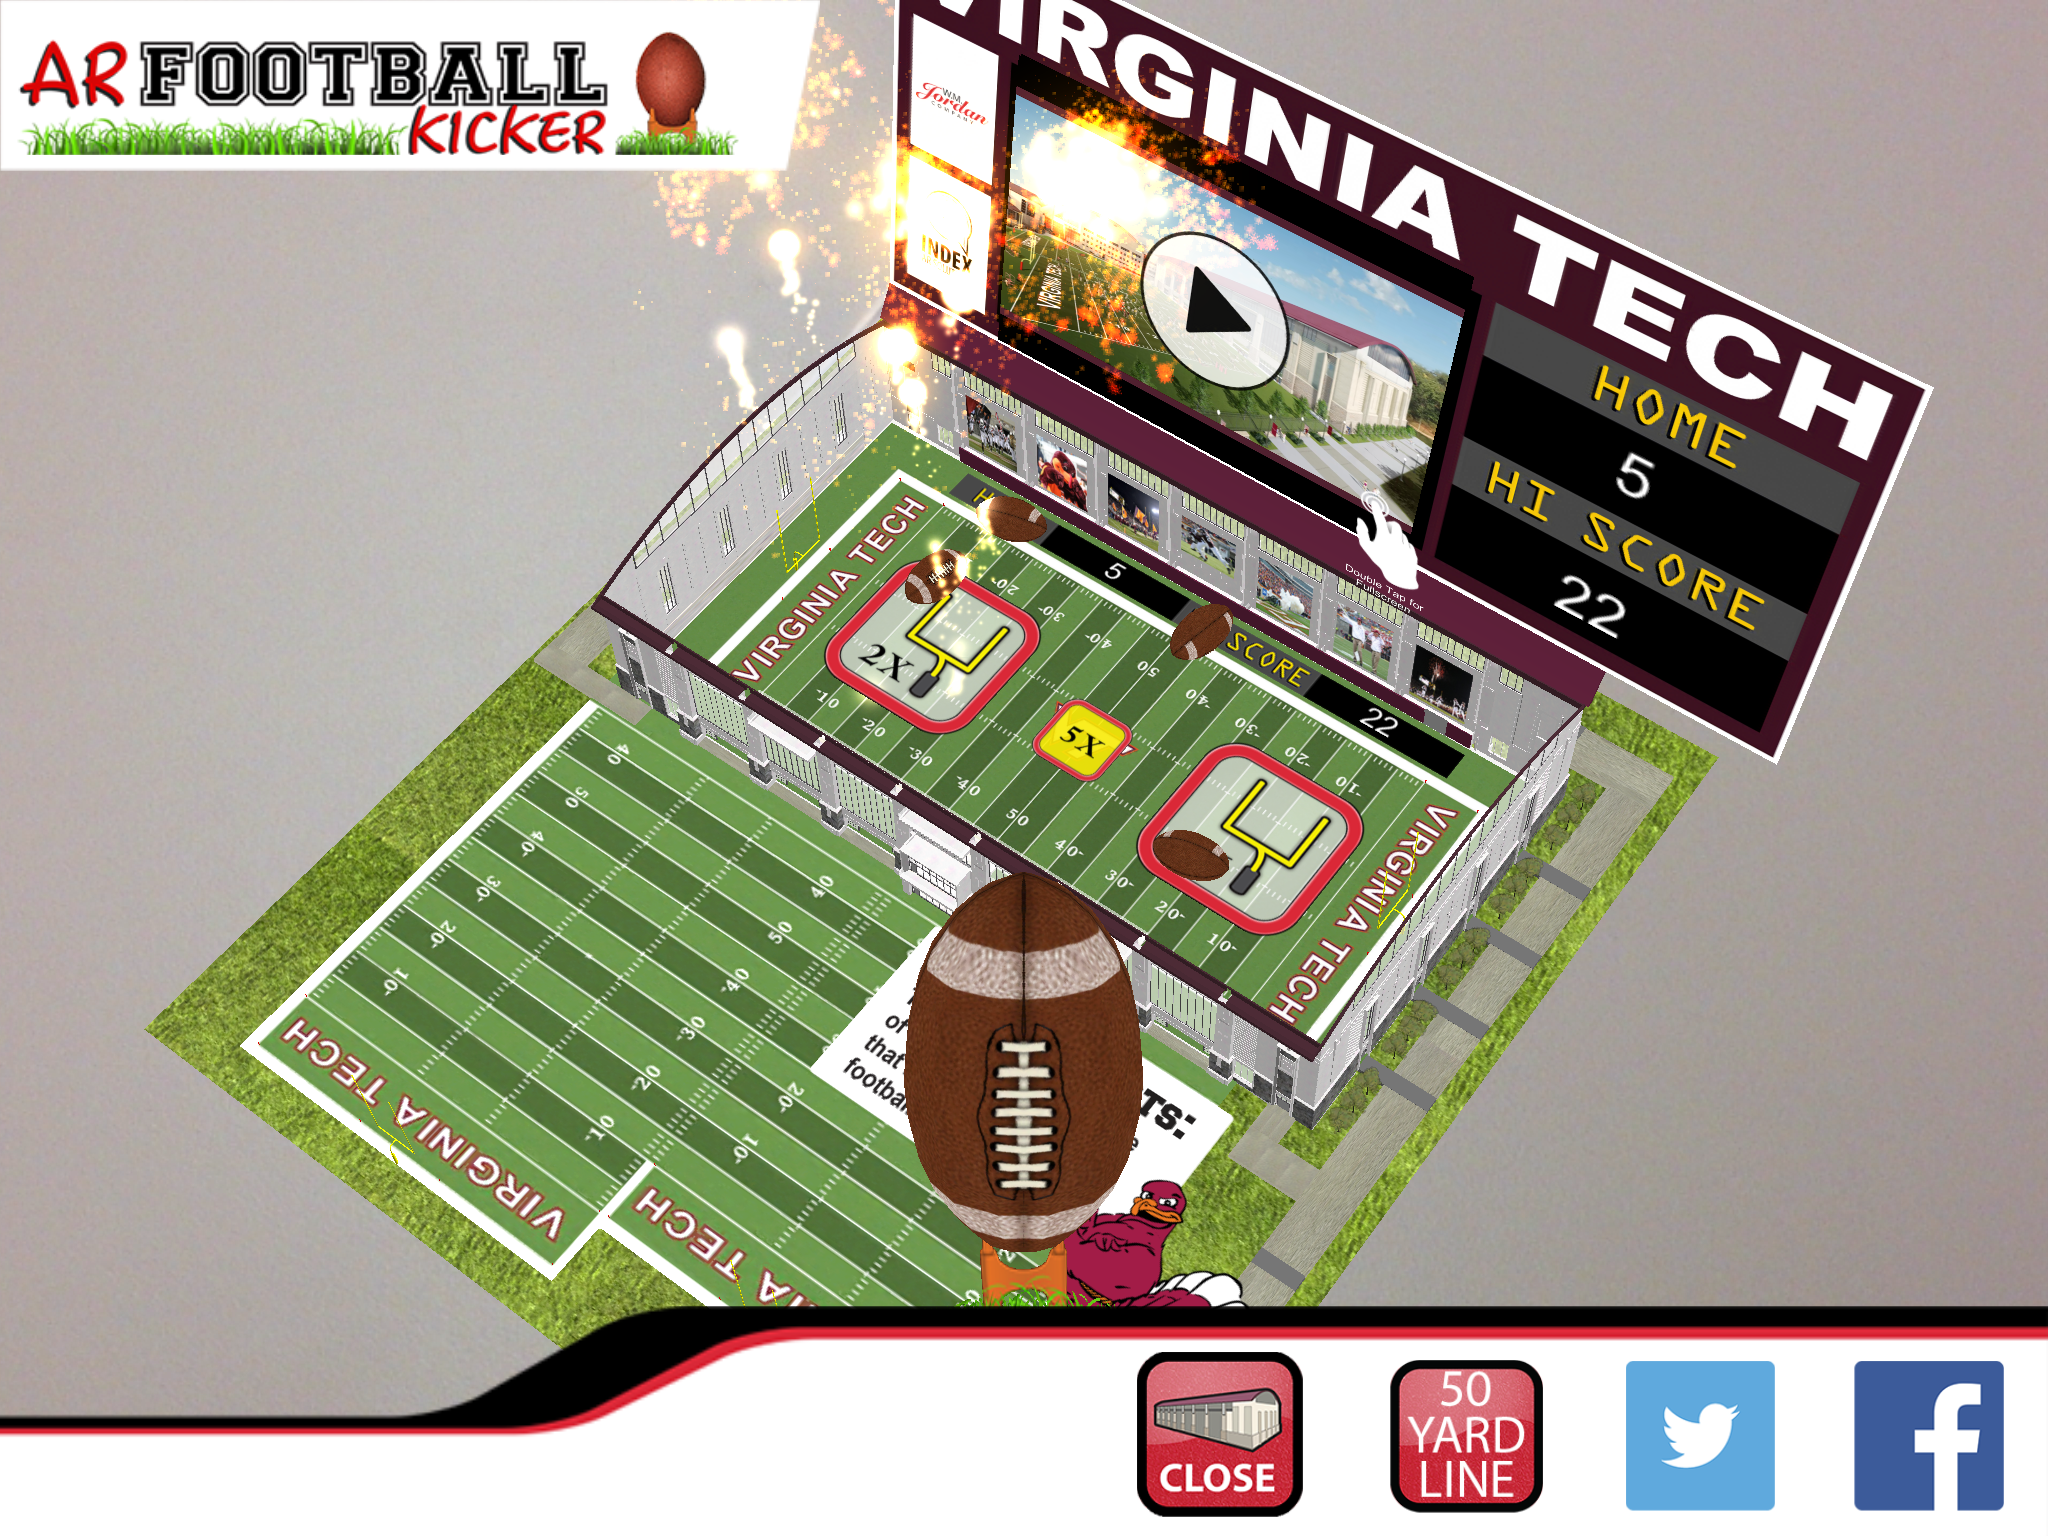 Virginia Tech Indoor Athletic Facility Augmented Reality